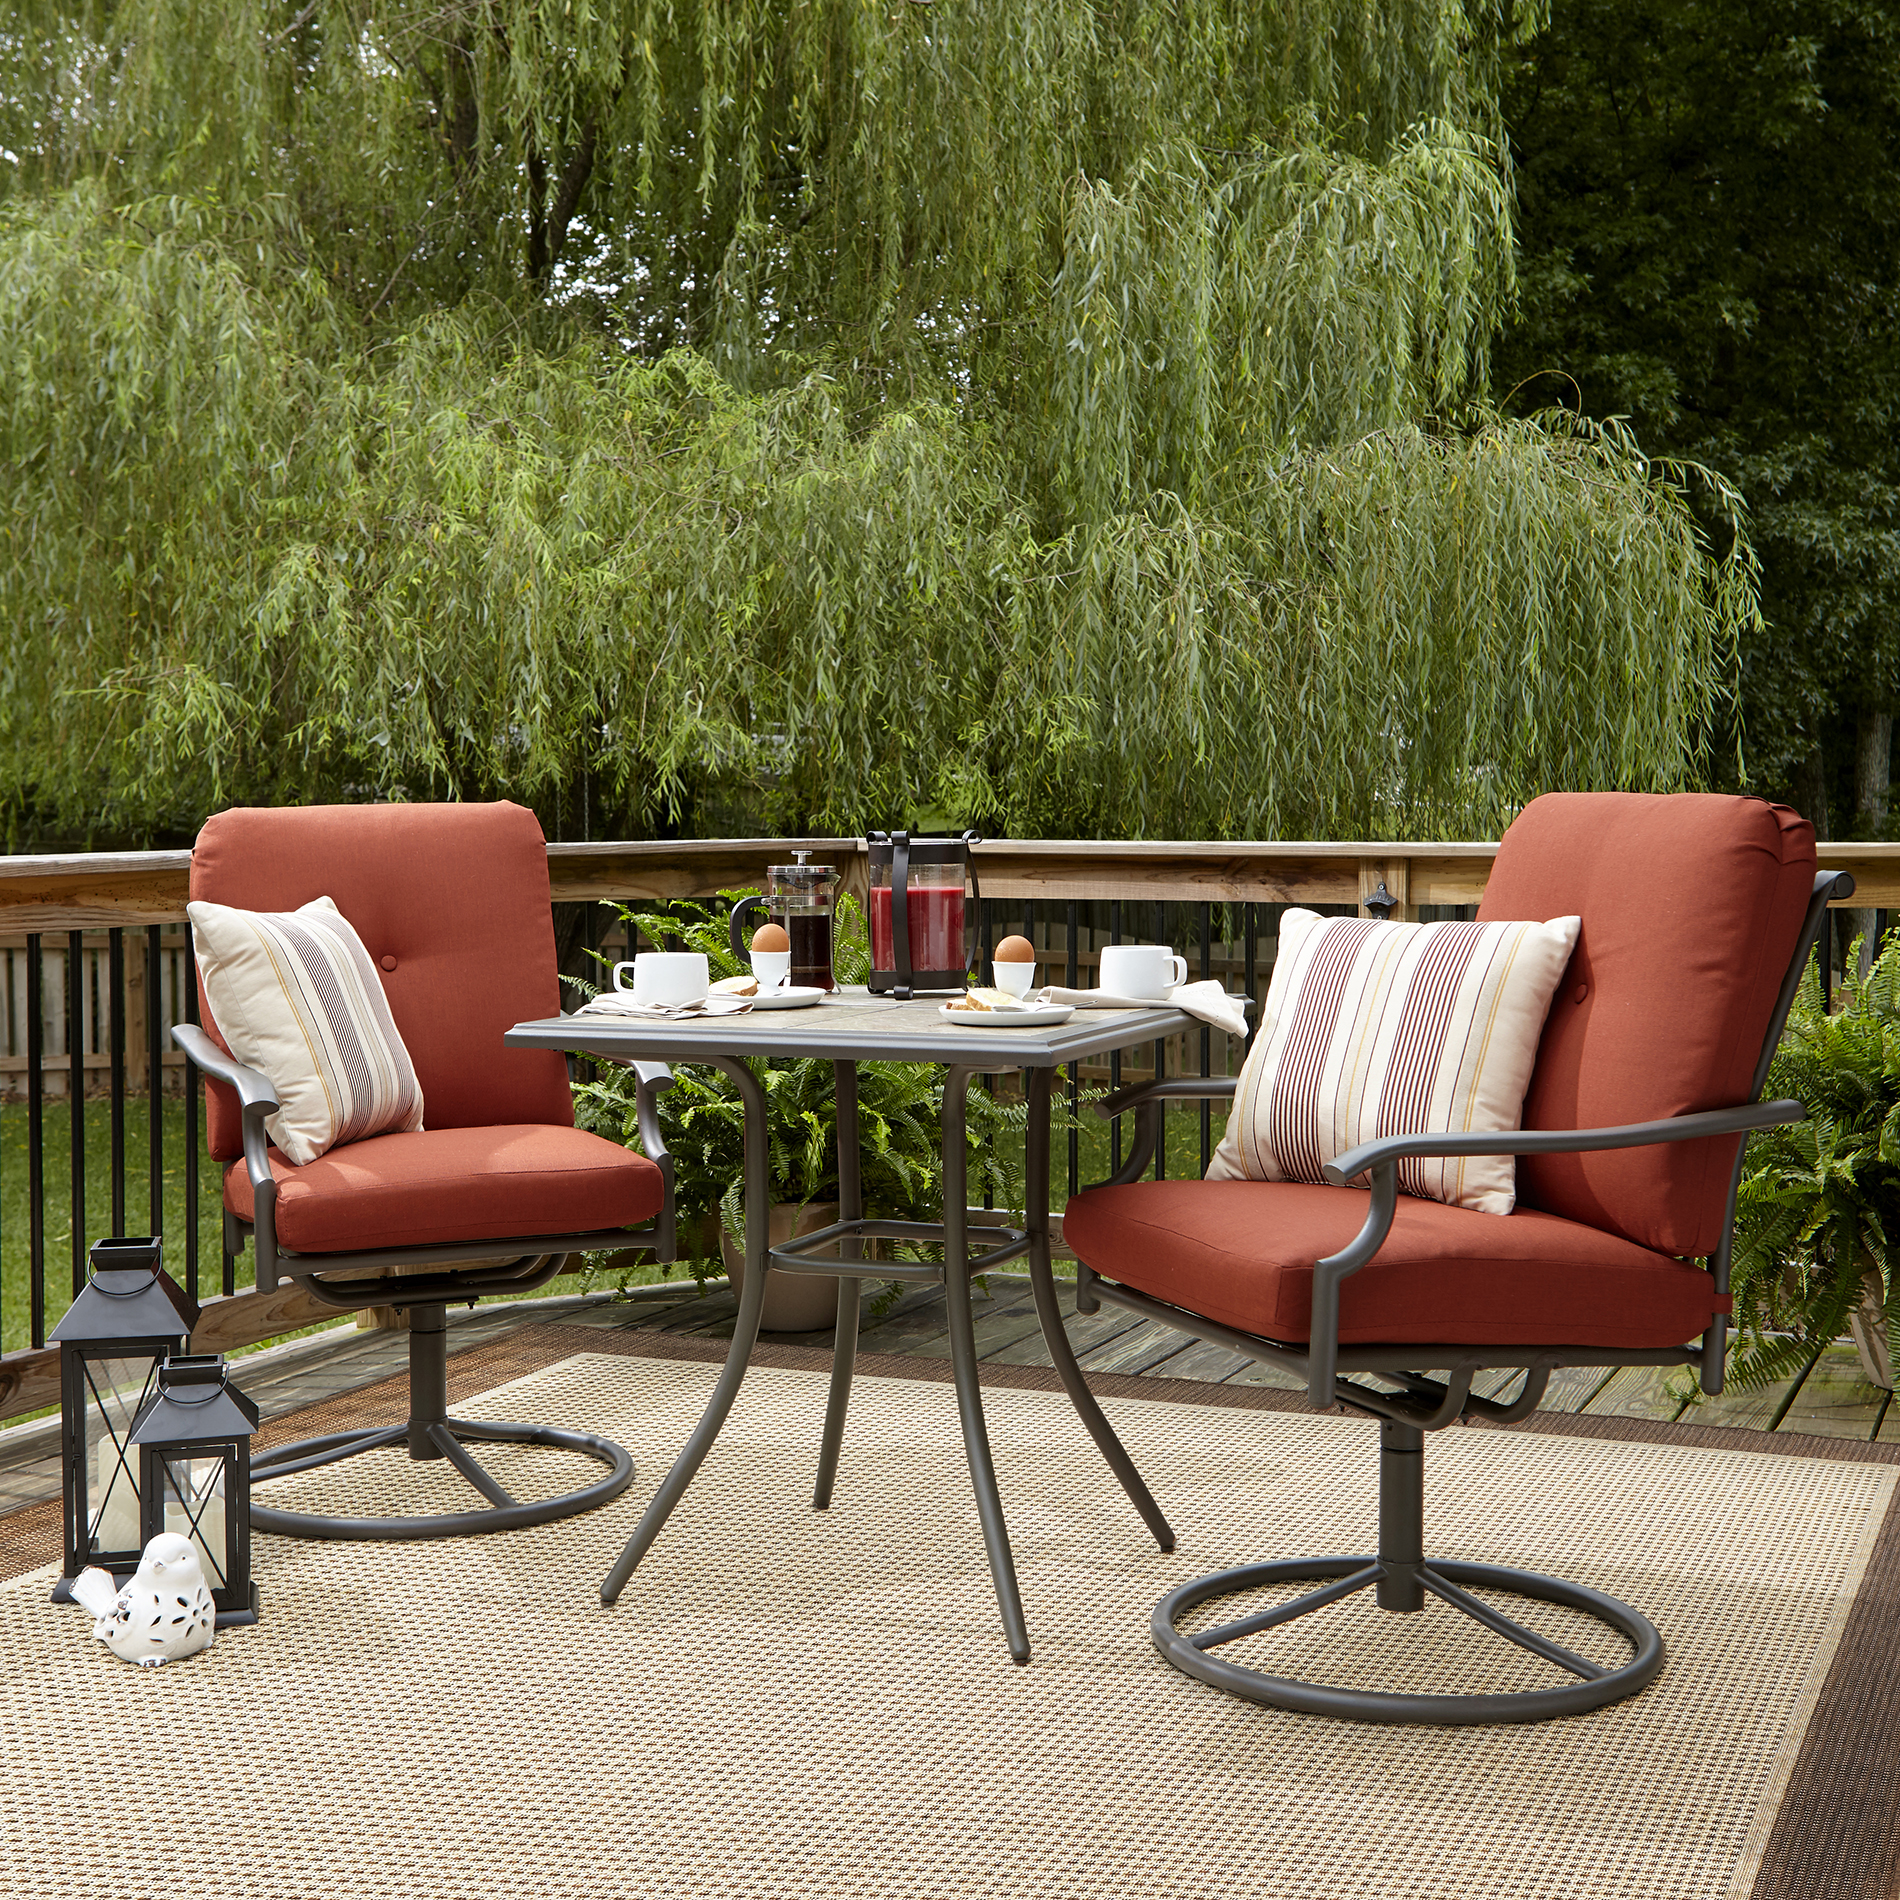 sears patio furniture sets Garden Oasis Brookston 3 Piece Bistro Set- Terracotta